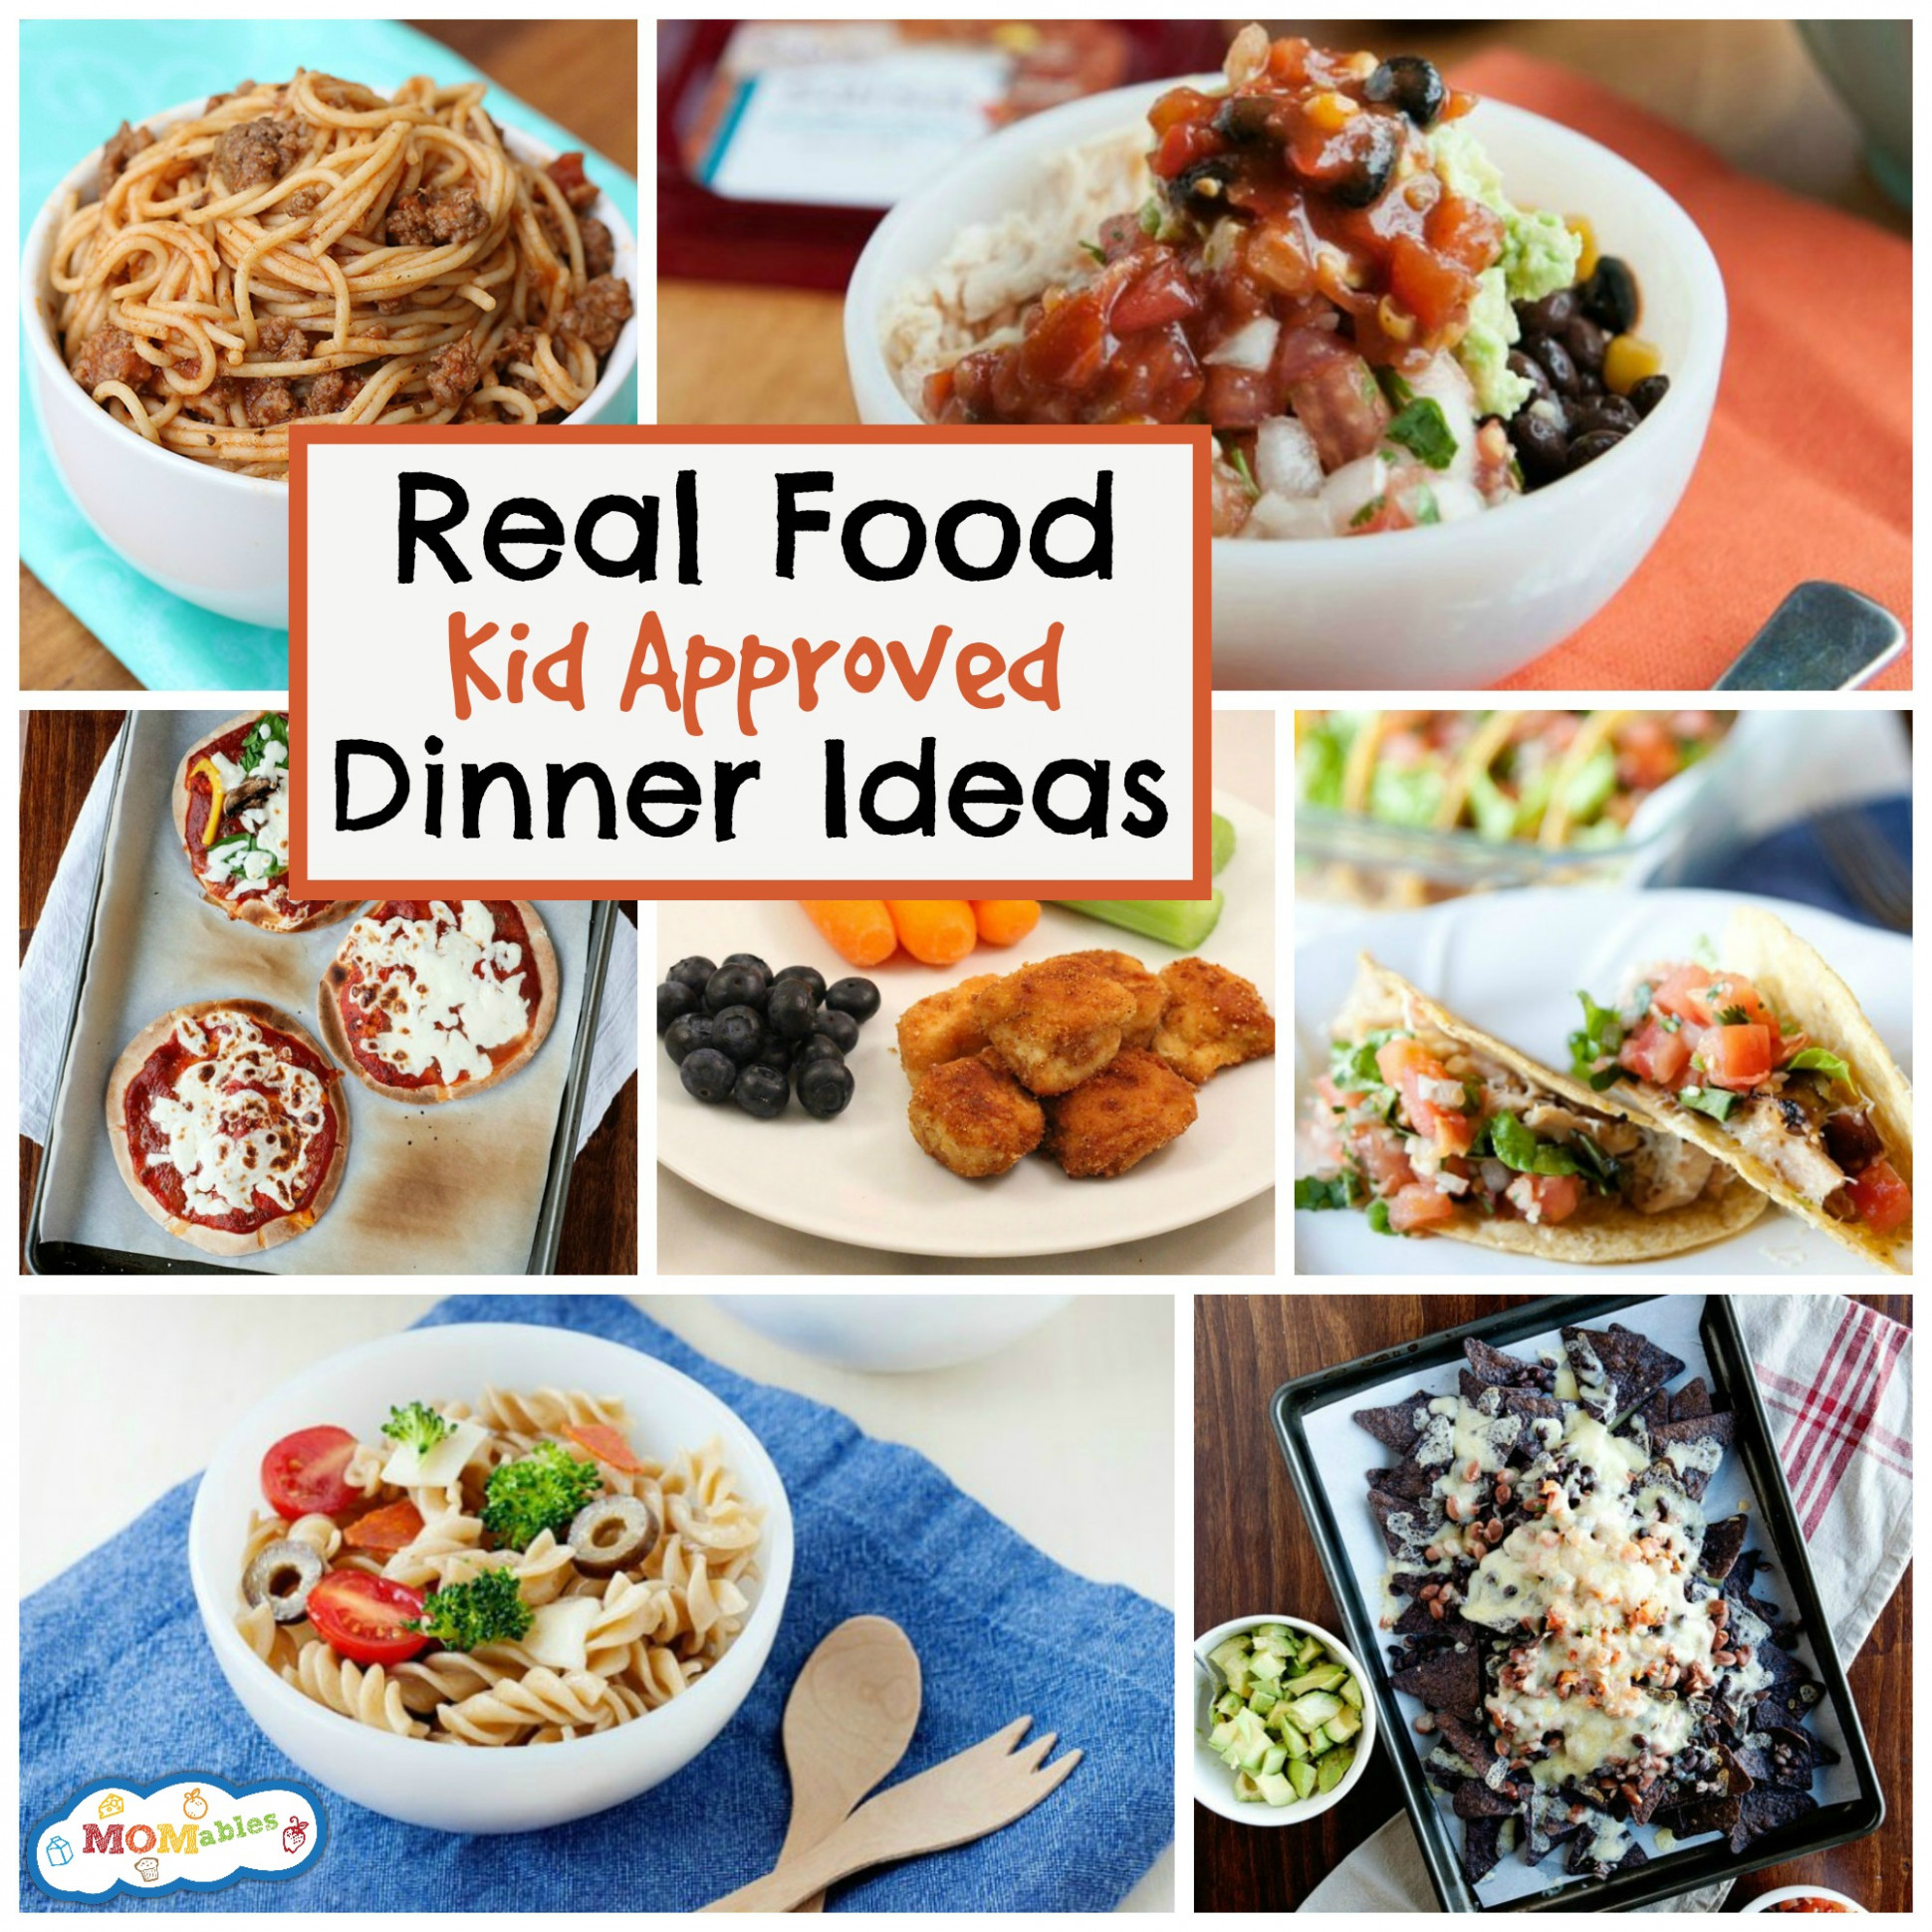 10 Real Food Kid Approved Dinner Ideas - toddler food recipes